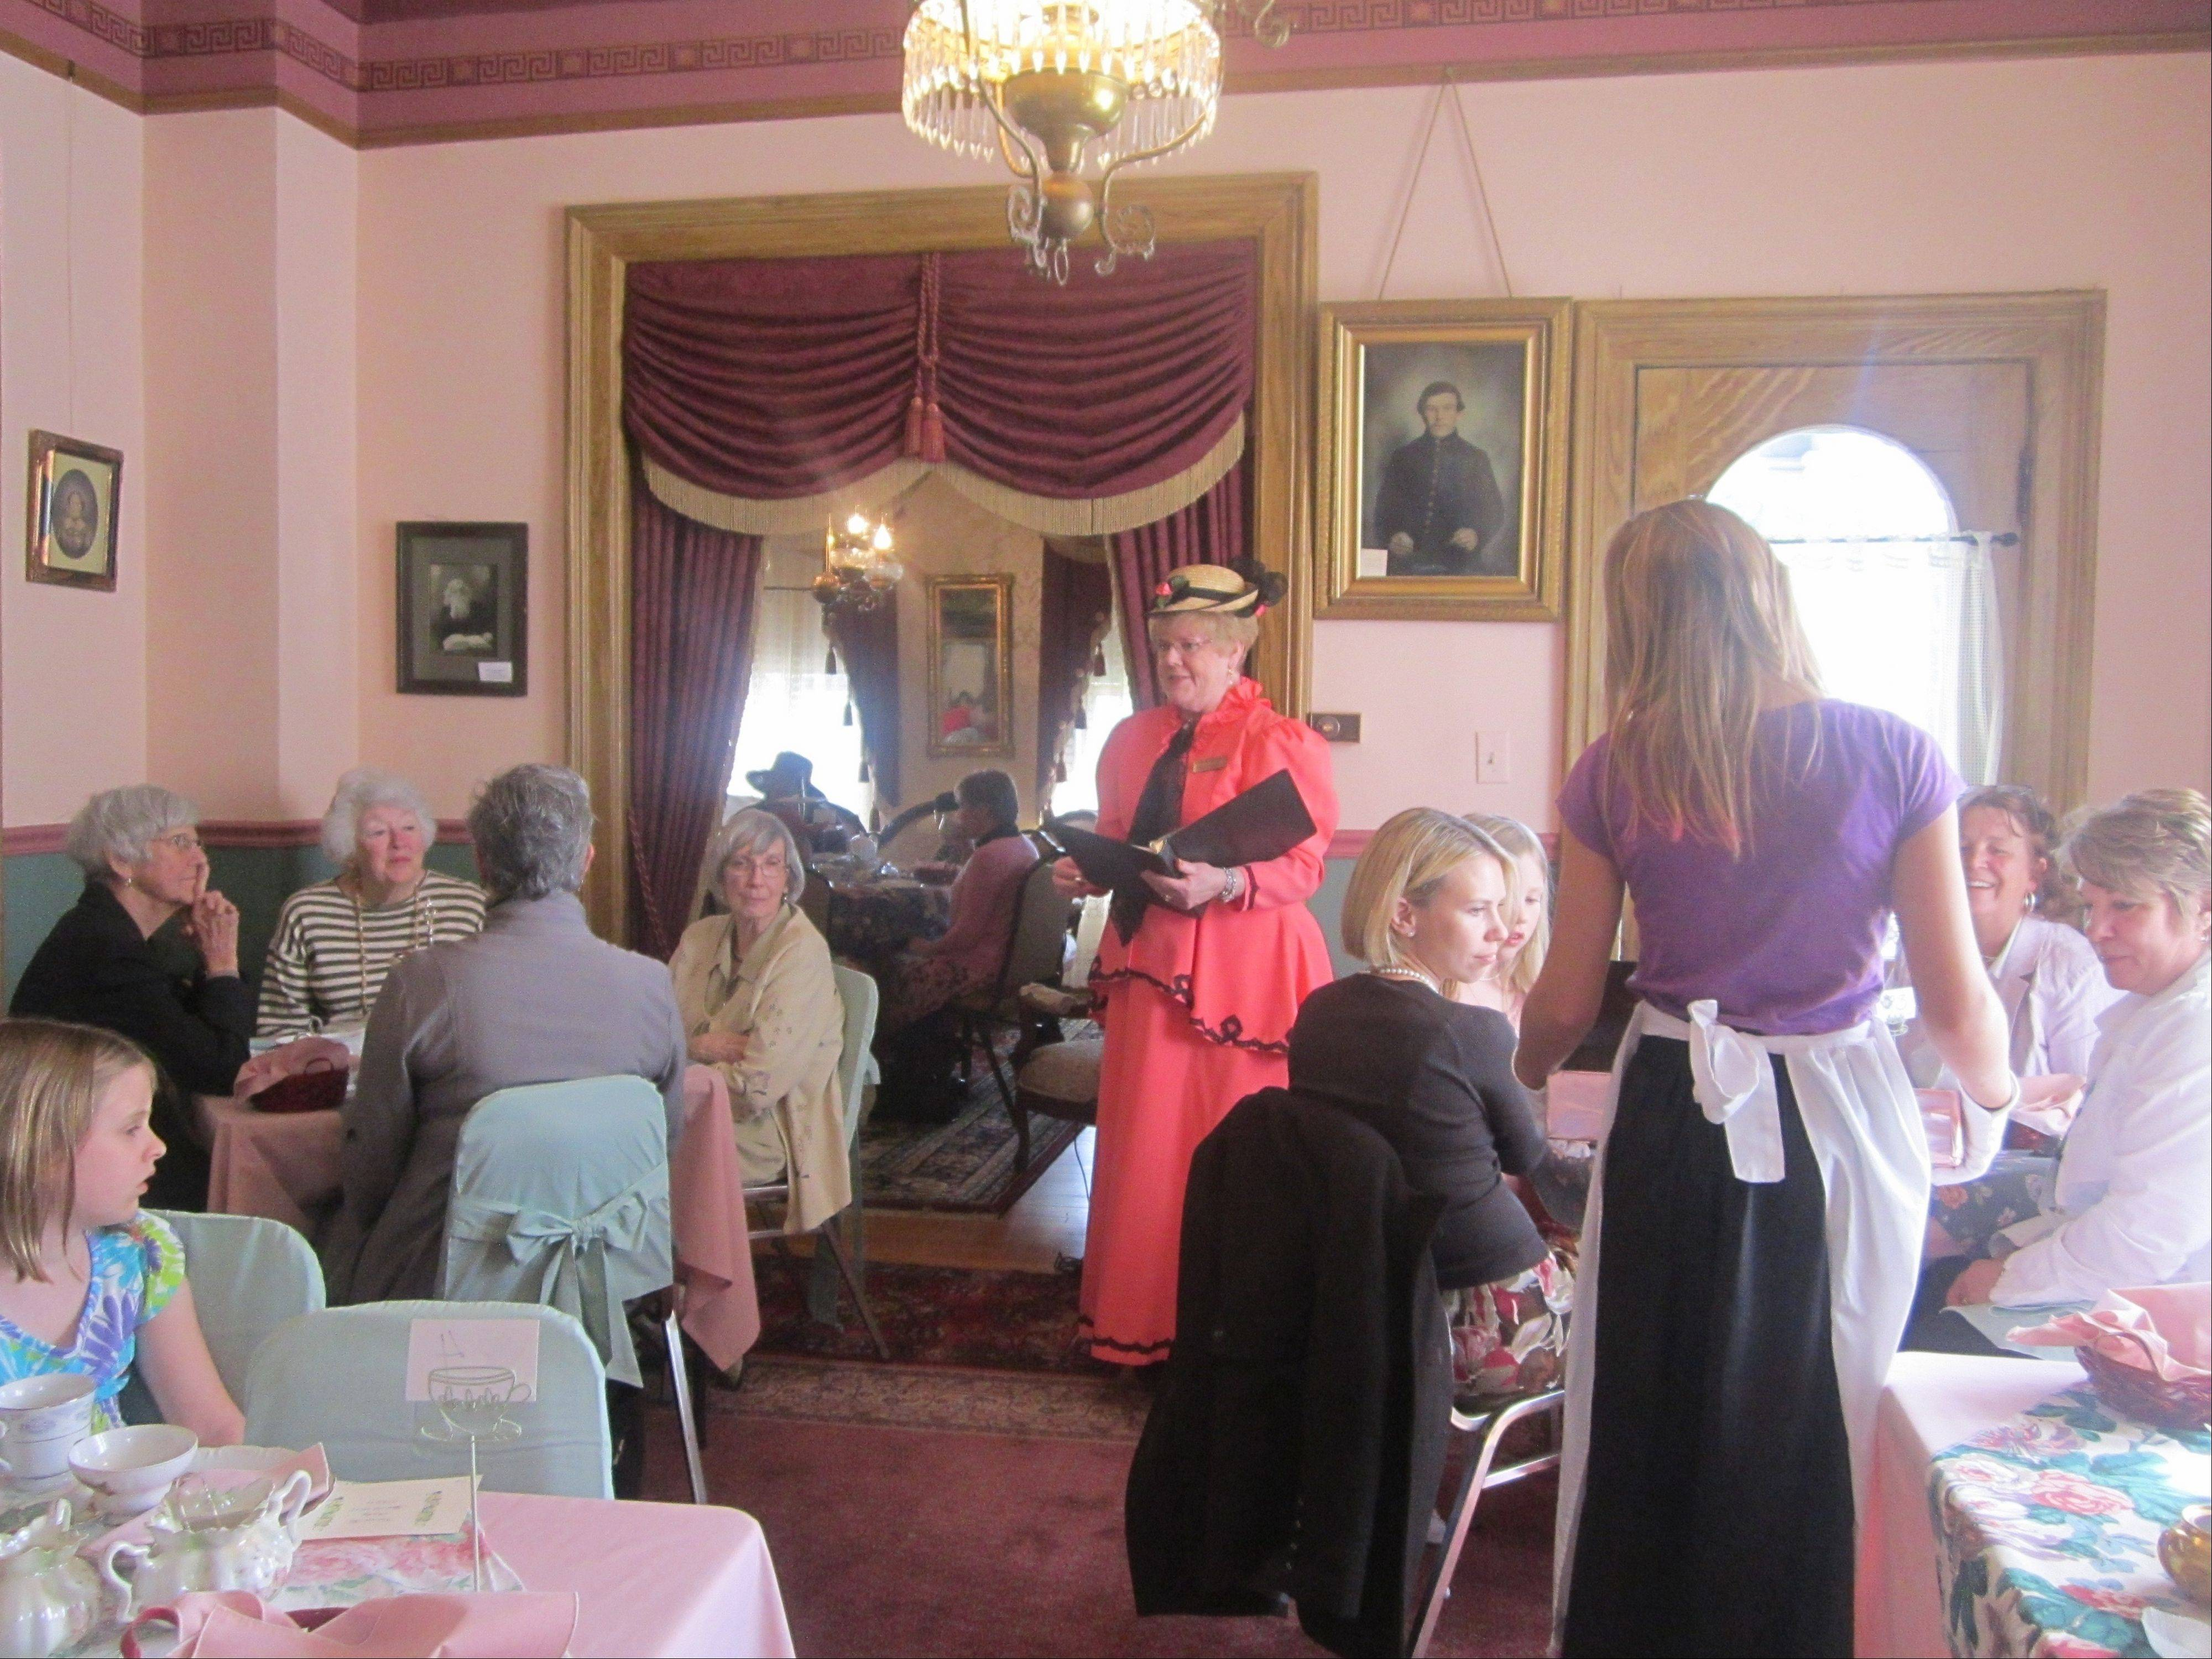 Enjoy an afternoon of tea, sandwiches, scones, sweets and a historical program on collections at the Palatine Historical Society's 19th annual Victorian Teas. Reserve your spot now at (847) 991-6460.